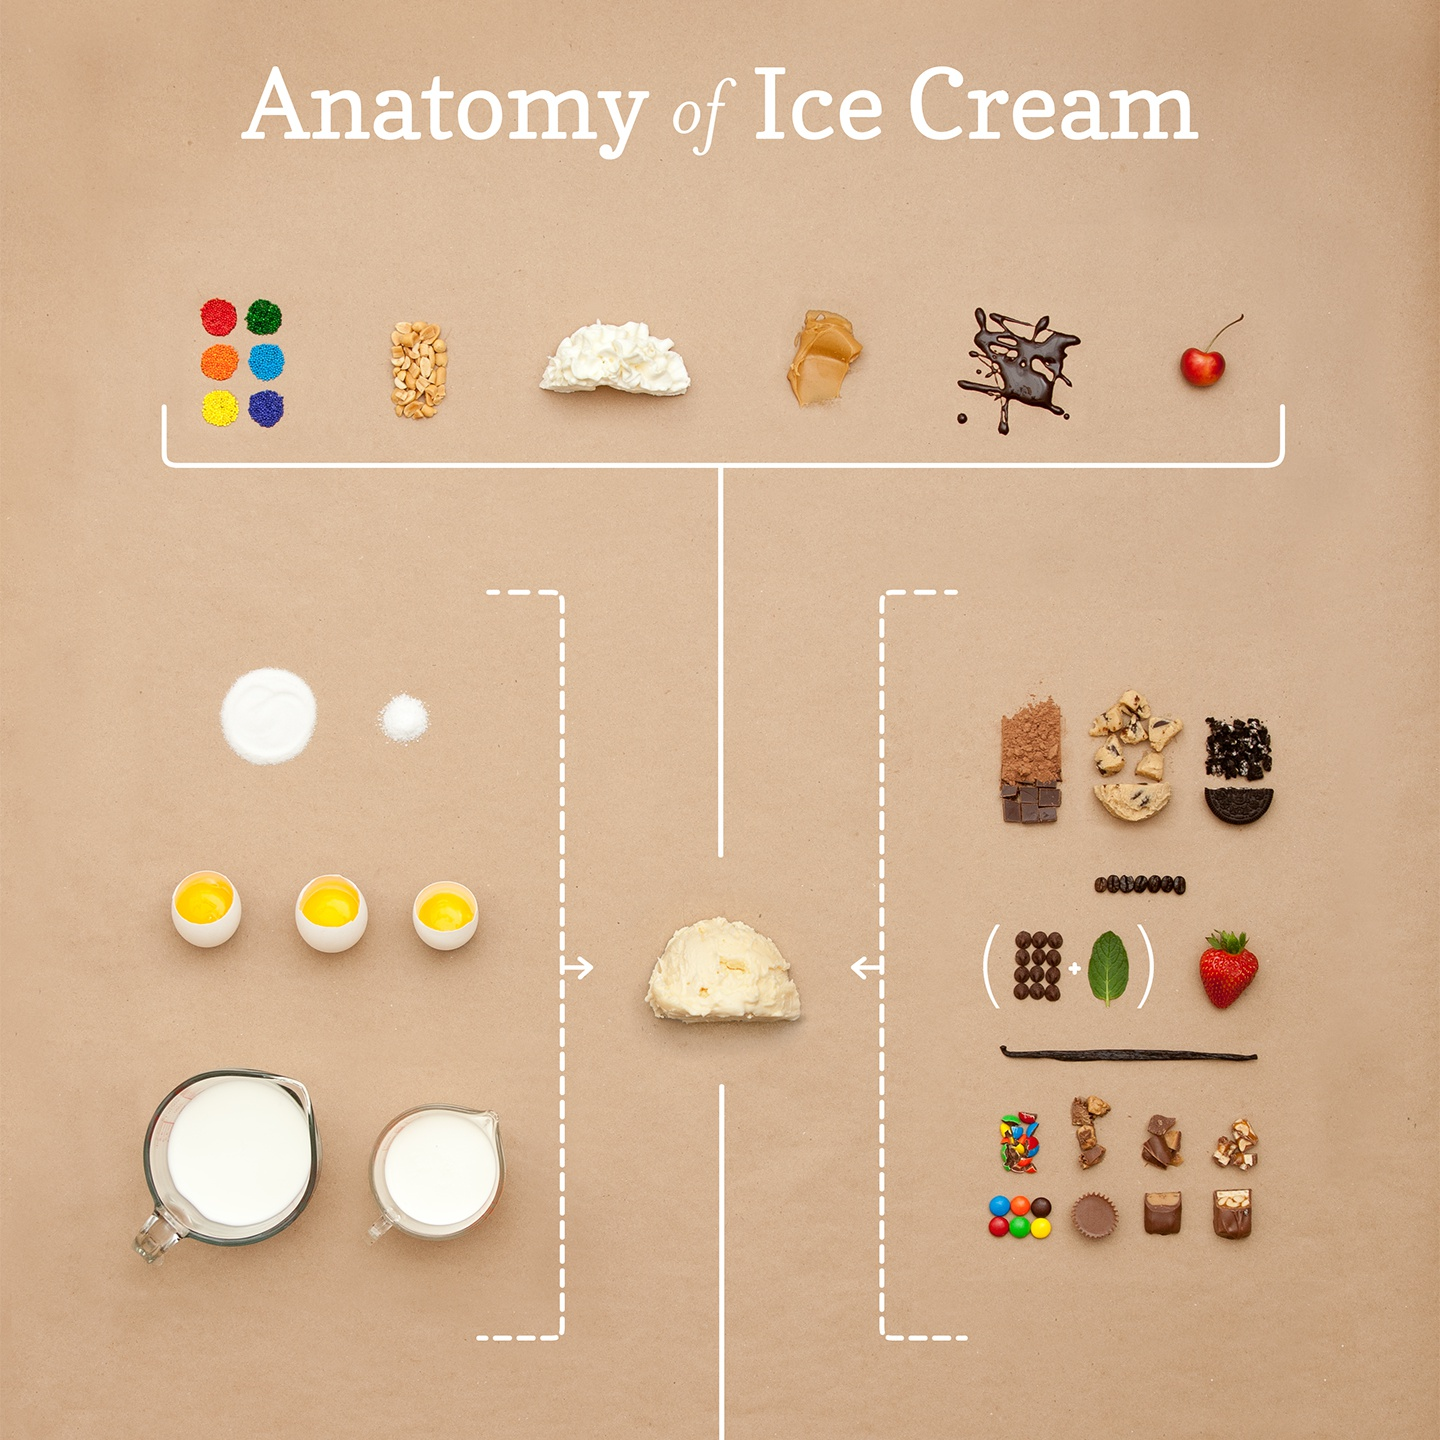 anatomy of ice cream